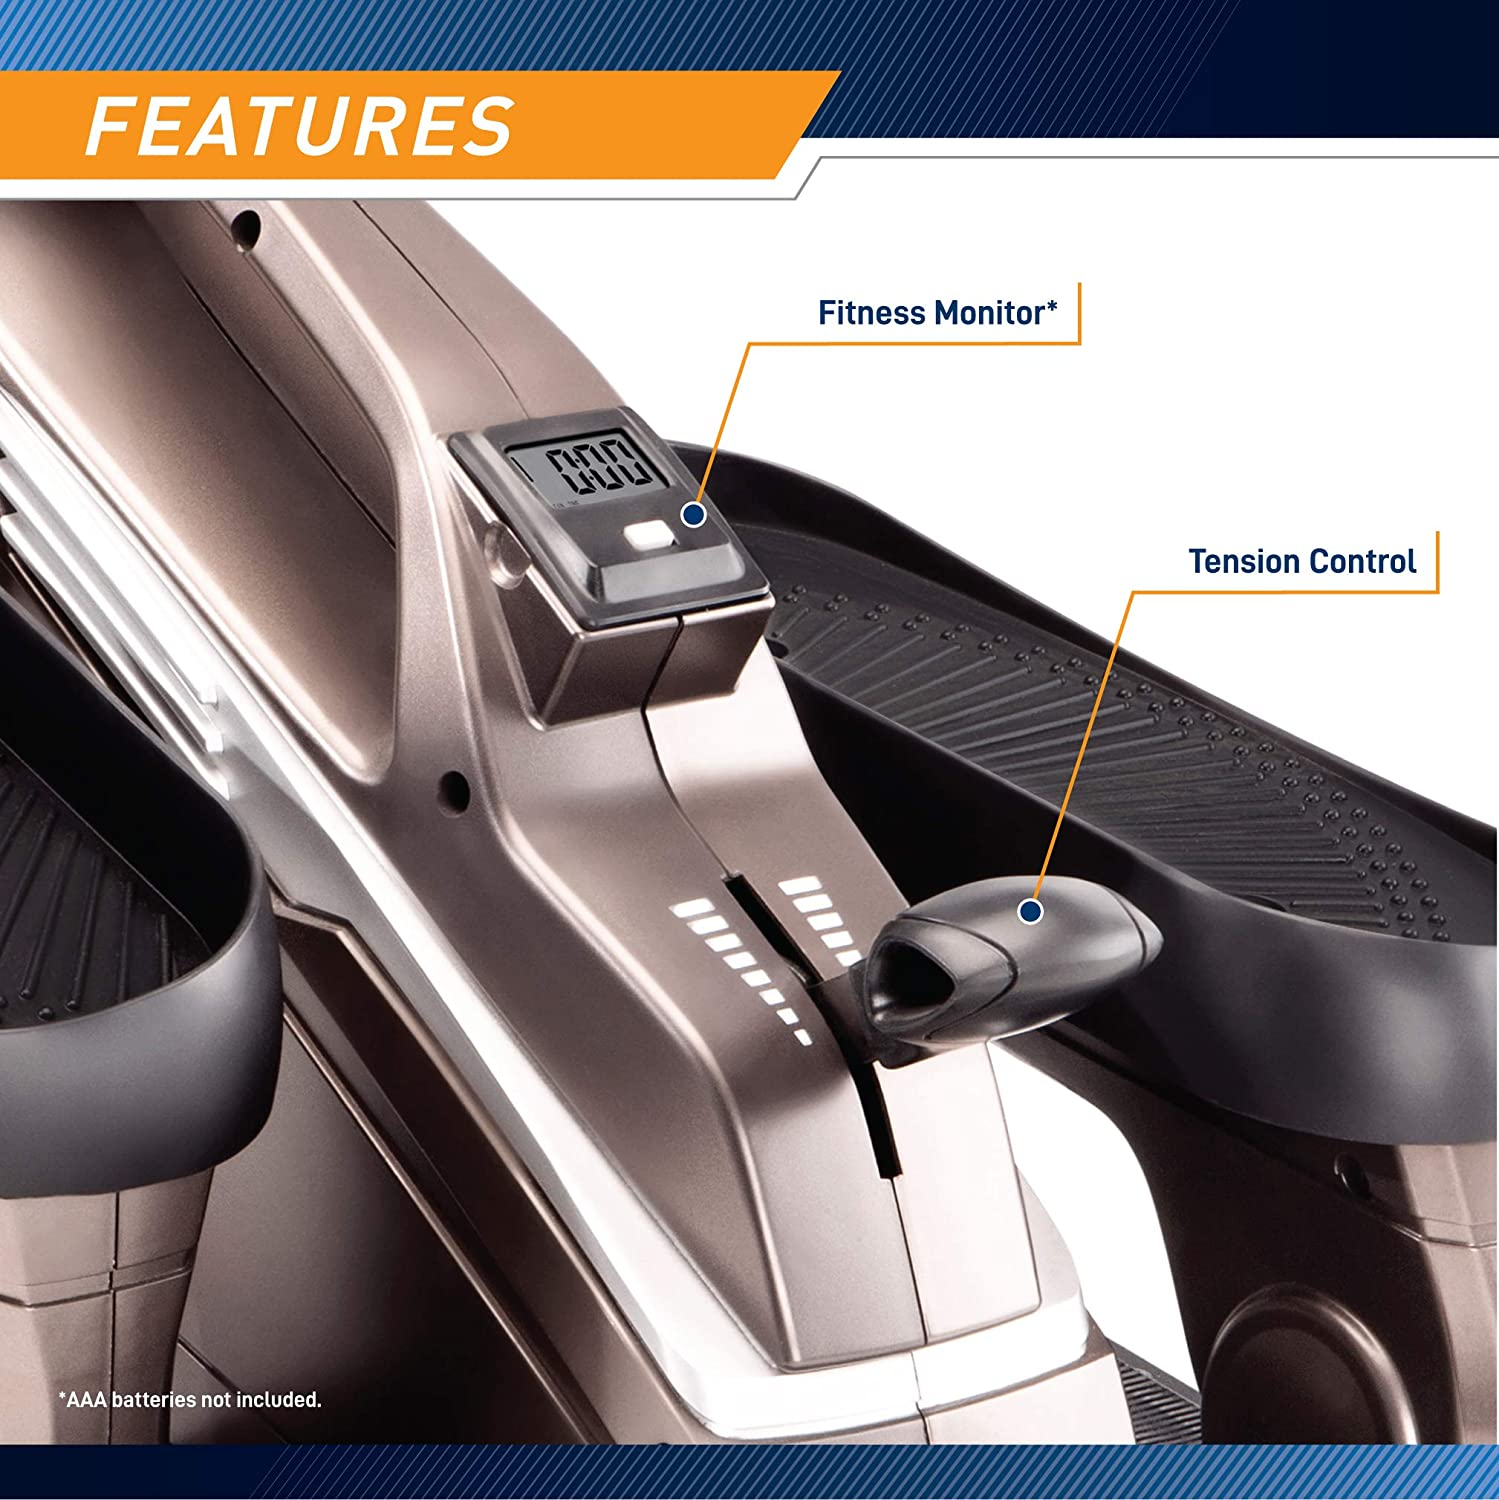 Bionic Body Magnetic Tension Under Desk Elliptical With Fitness Monitor